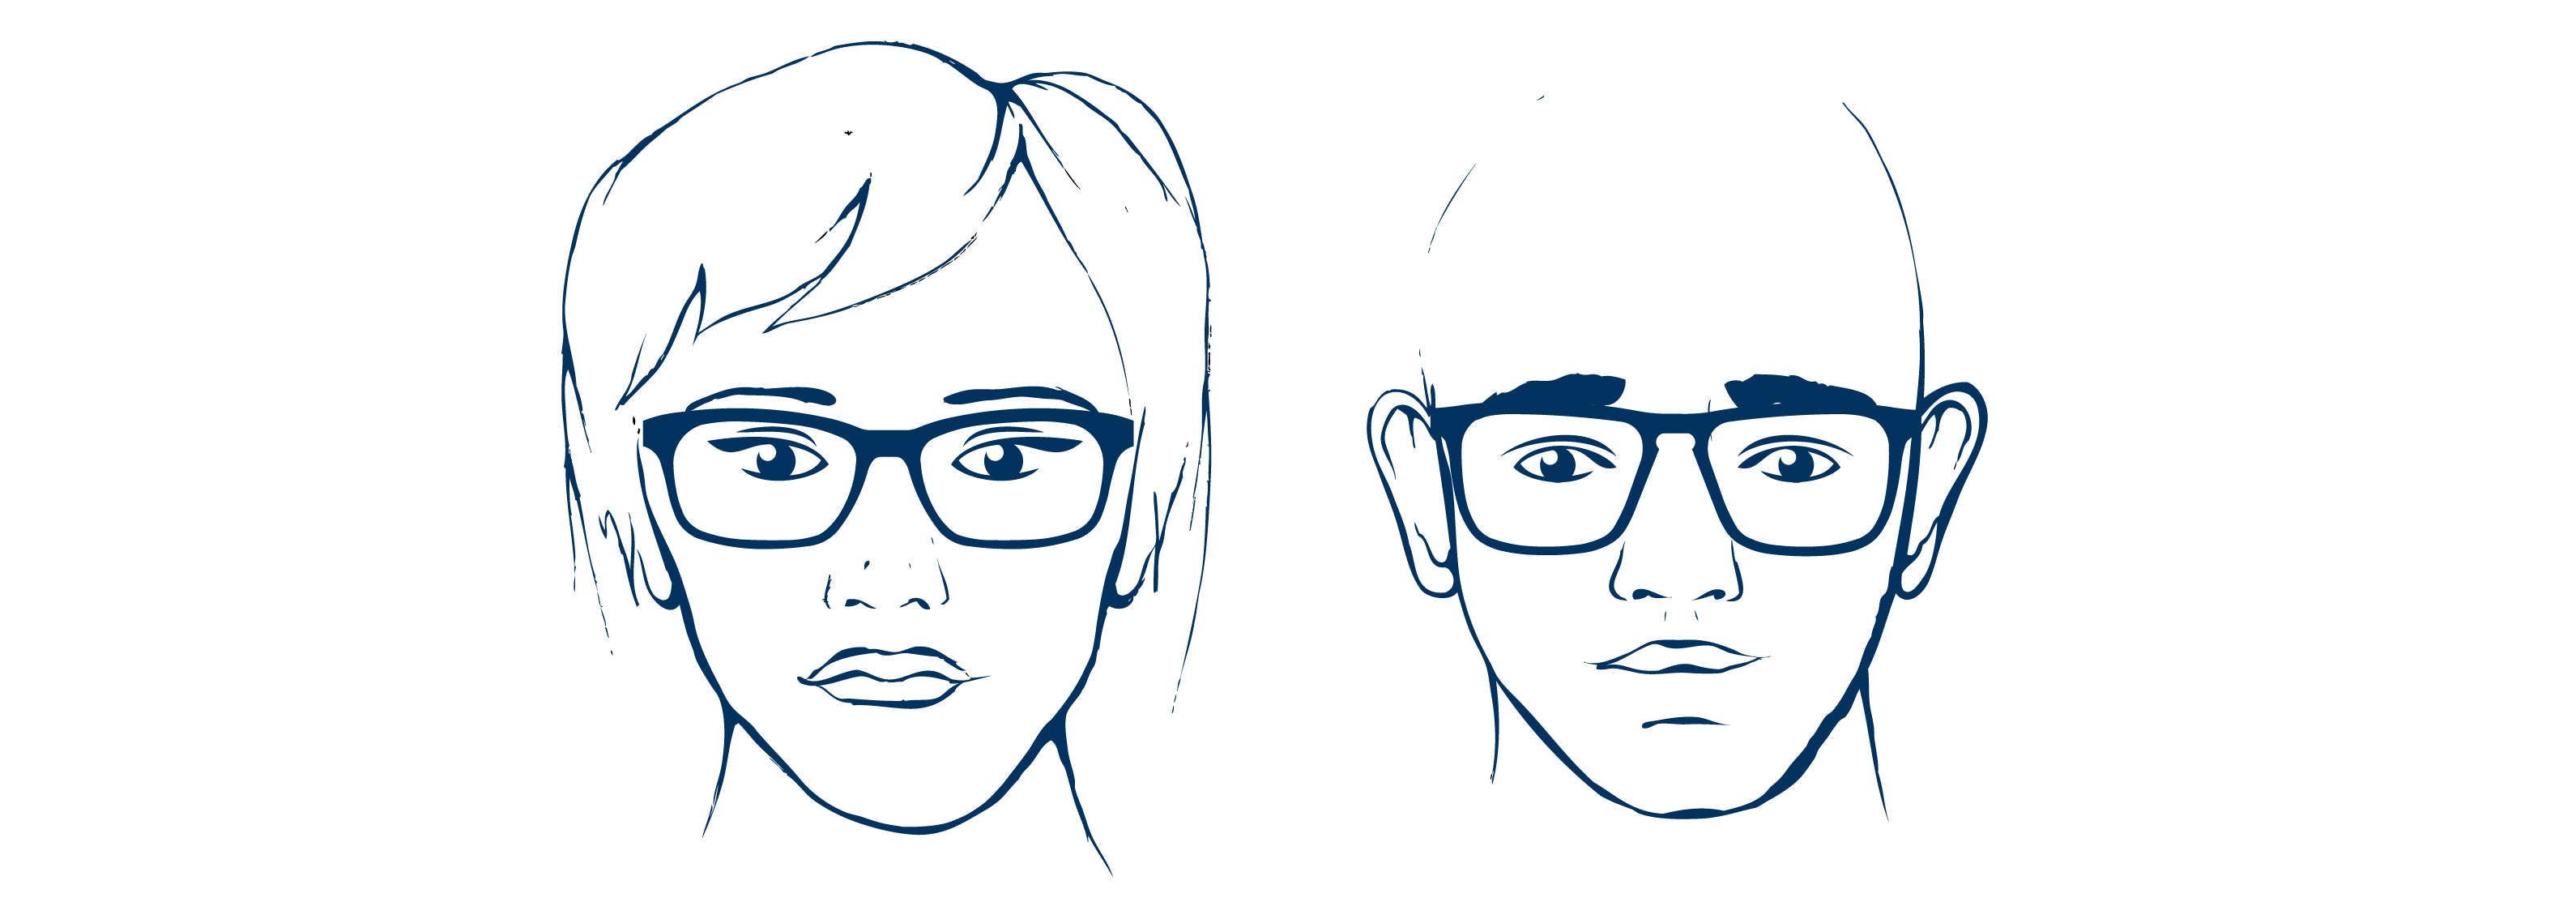 Prescription glasses for oval face shapes